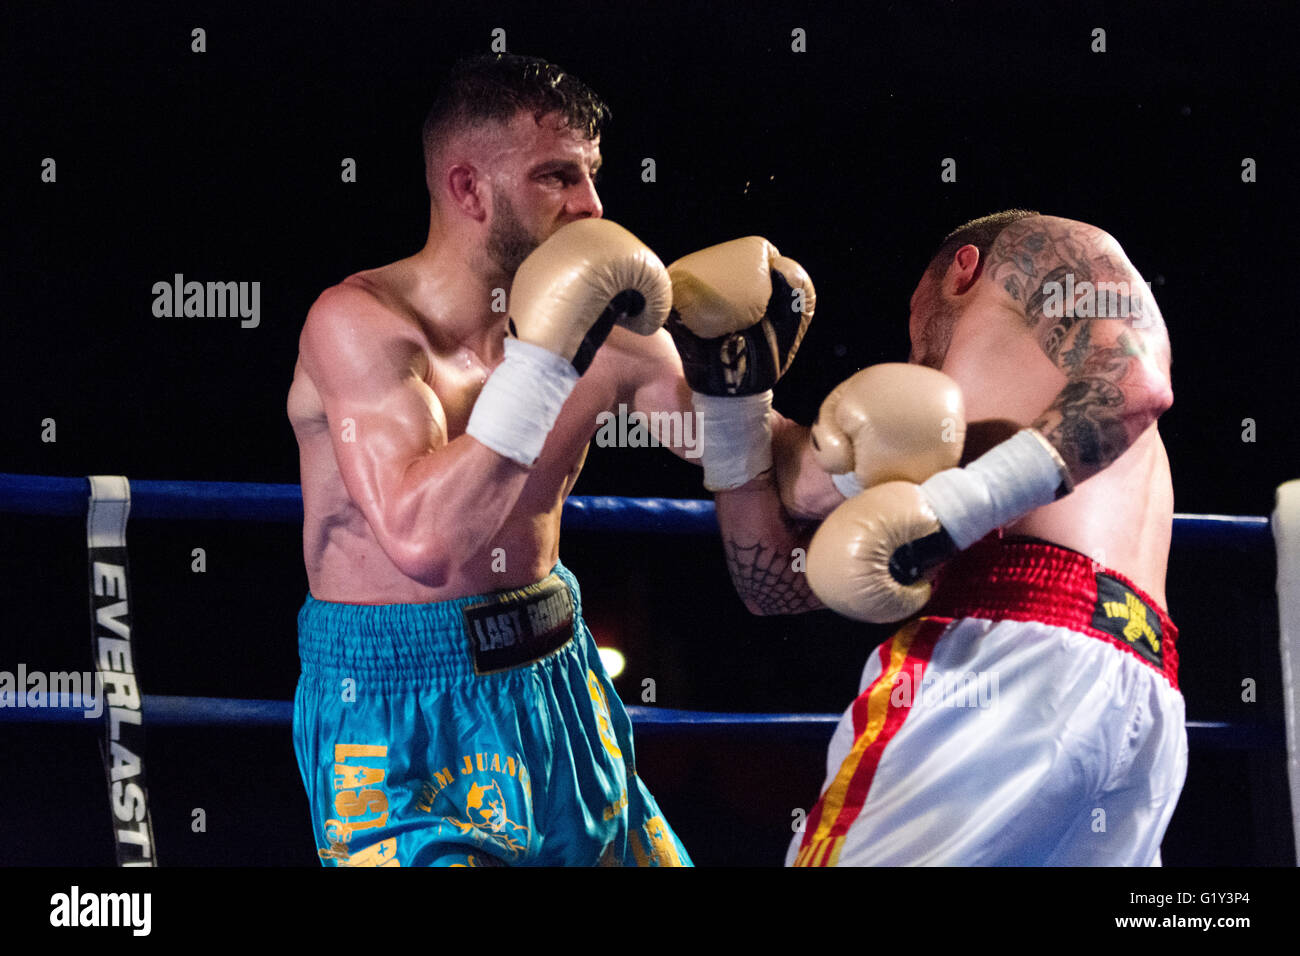 Gijon, Spain. 21st May, 2016. Juancho Gonzalez hits Marc Vidal during the boxing match of Spanish national featherweight - Stock Image